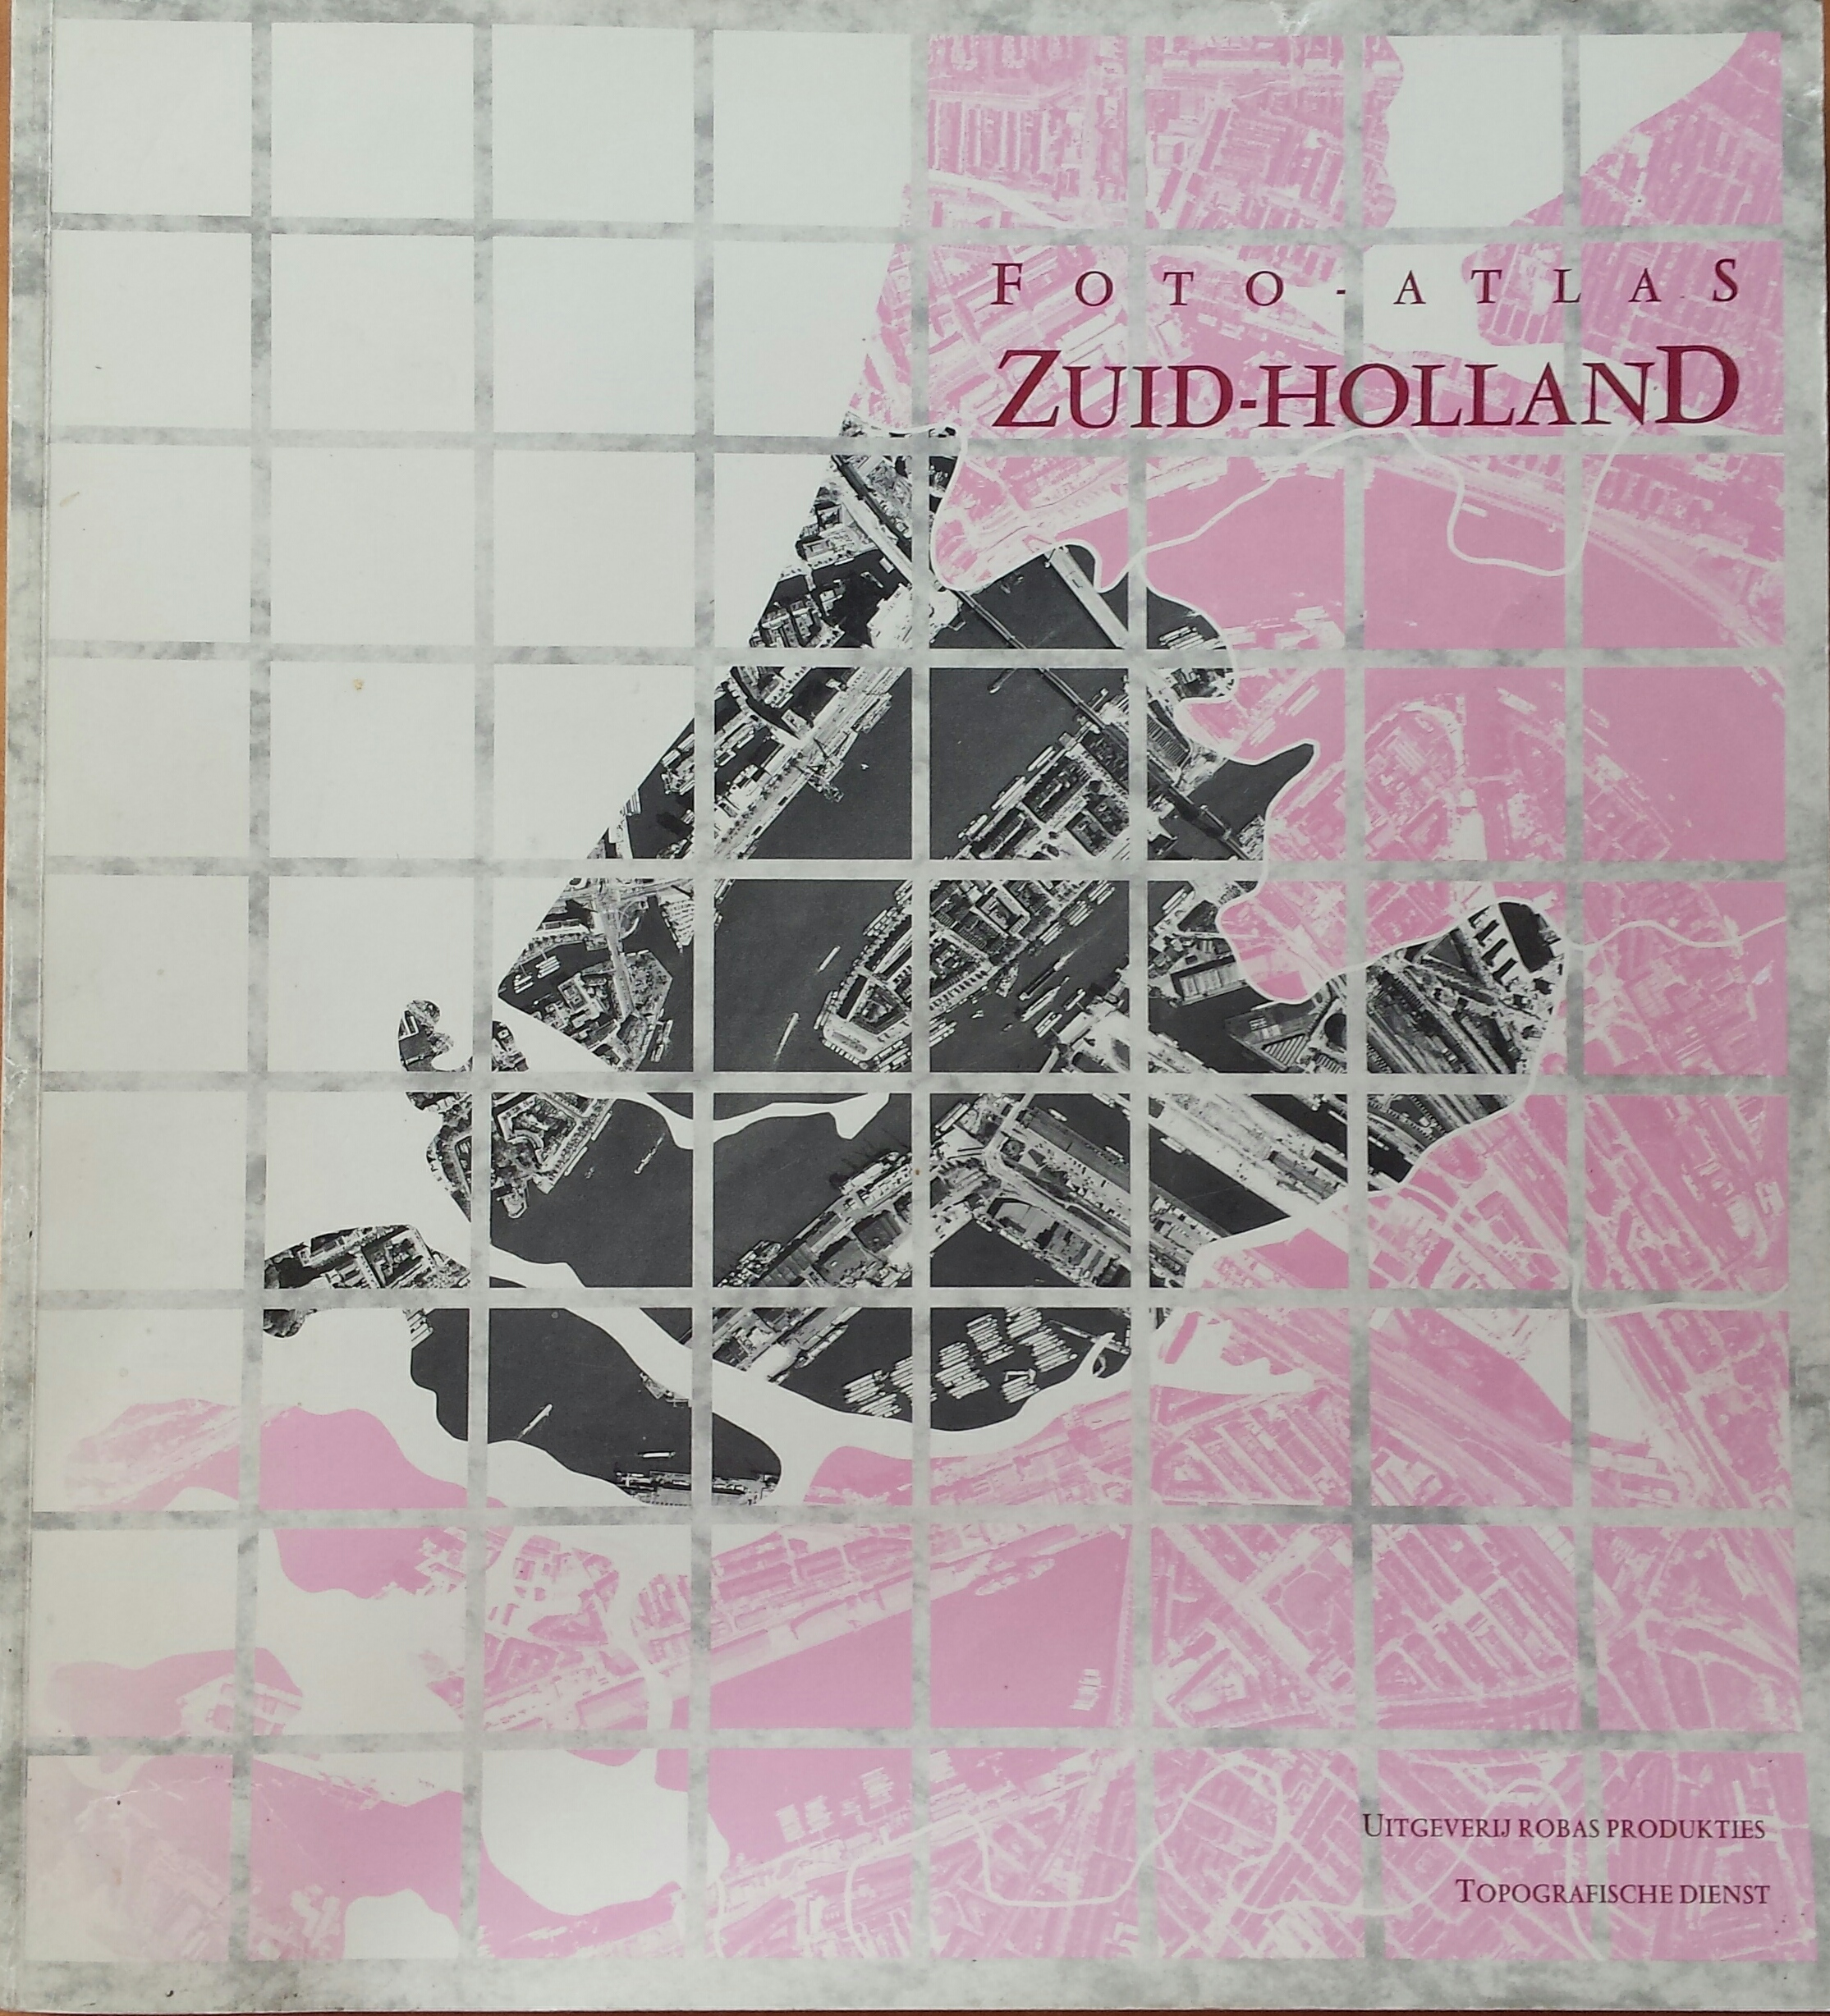 https://oudoegstgeest.nl/images/publicaties/Foto-atlas_Zuid-Holland.jpg